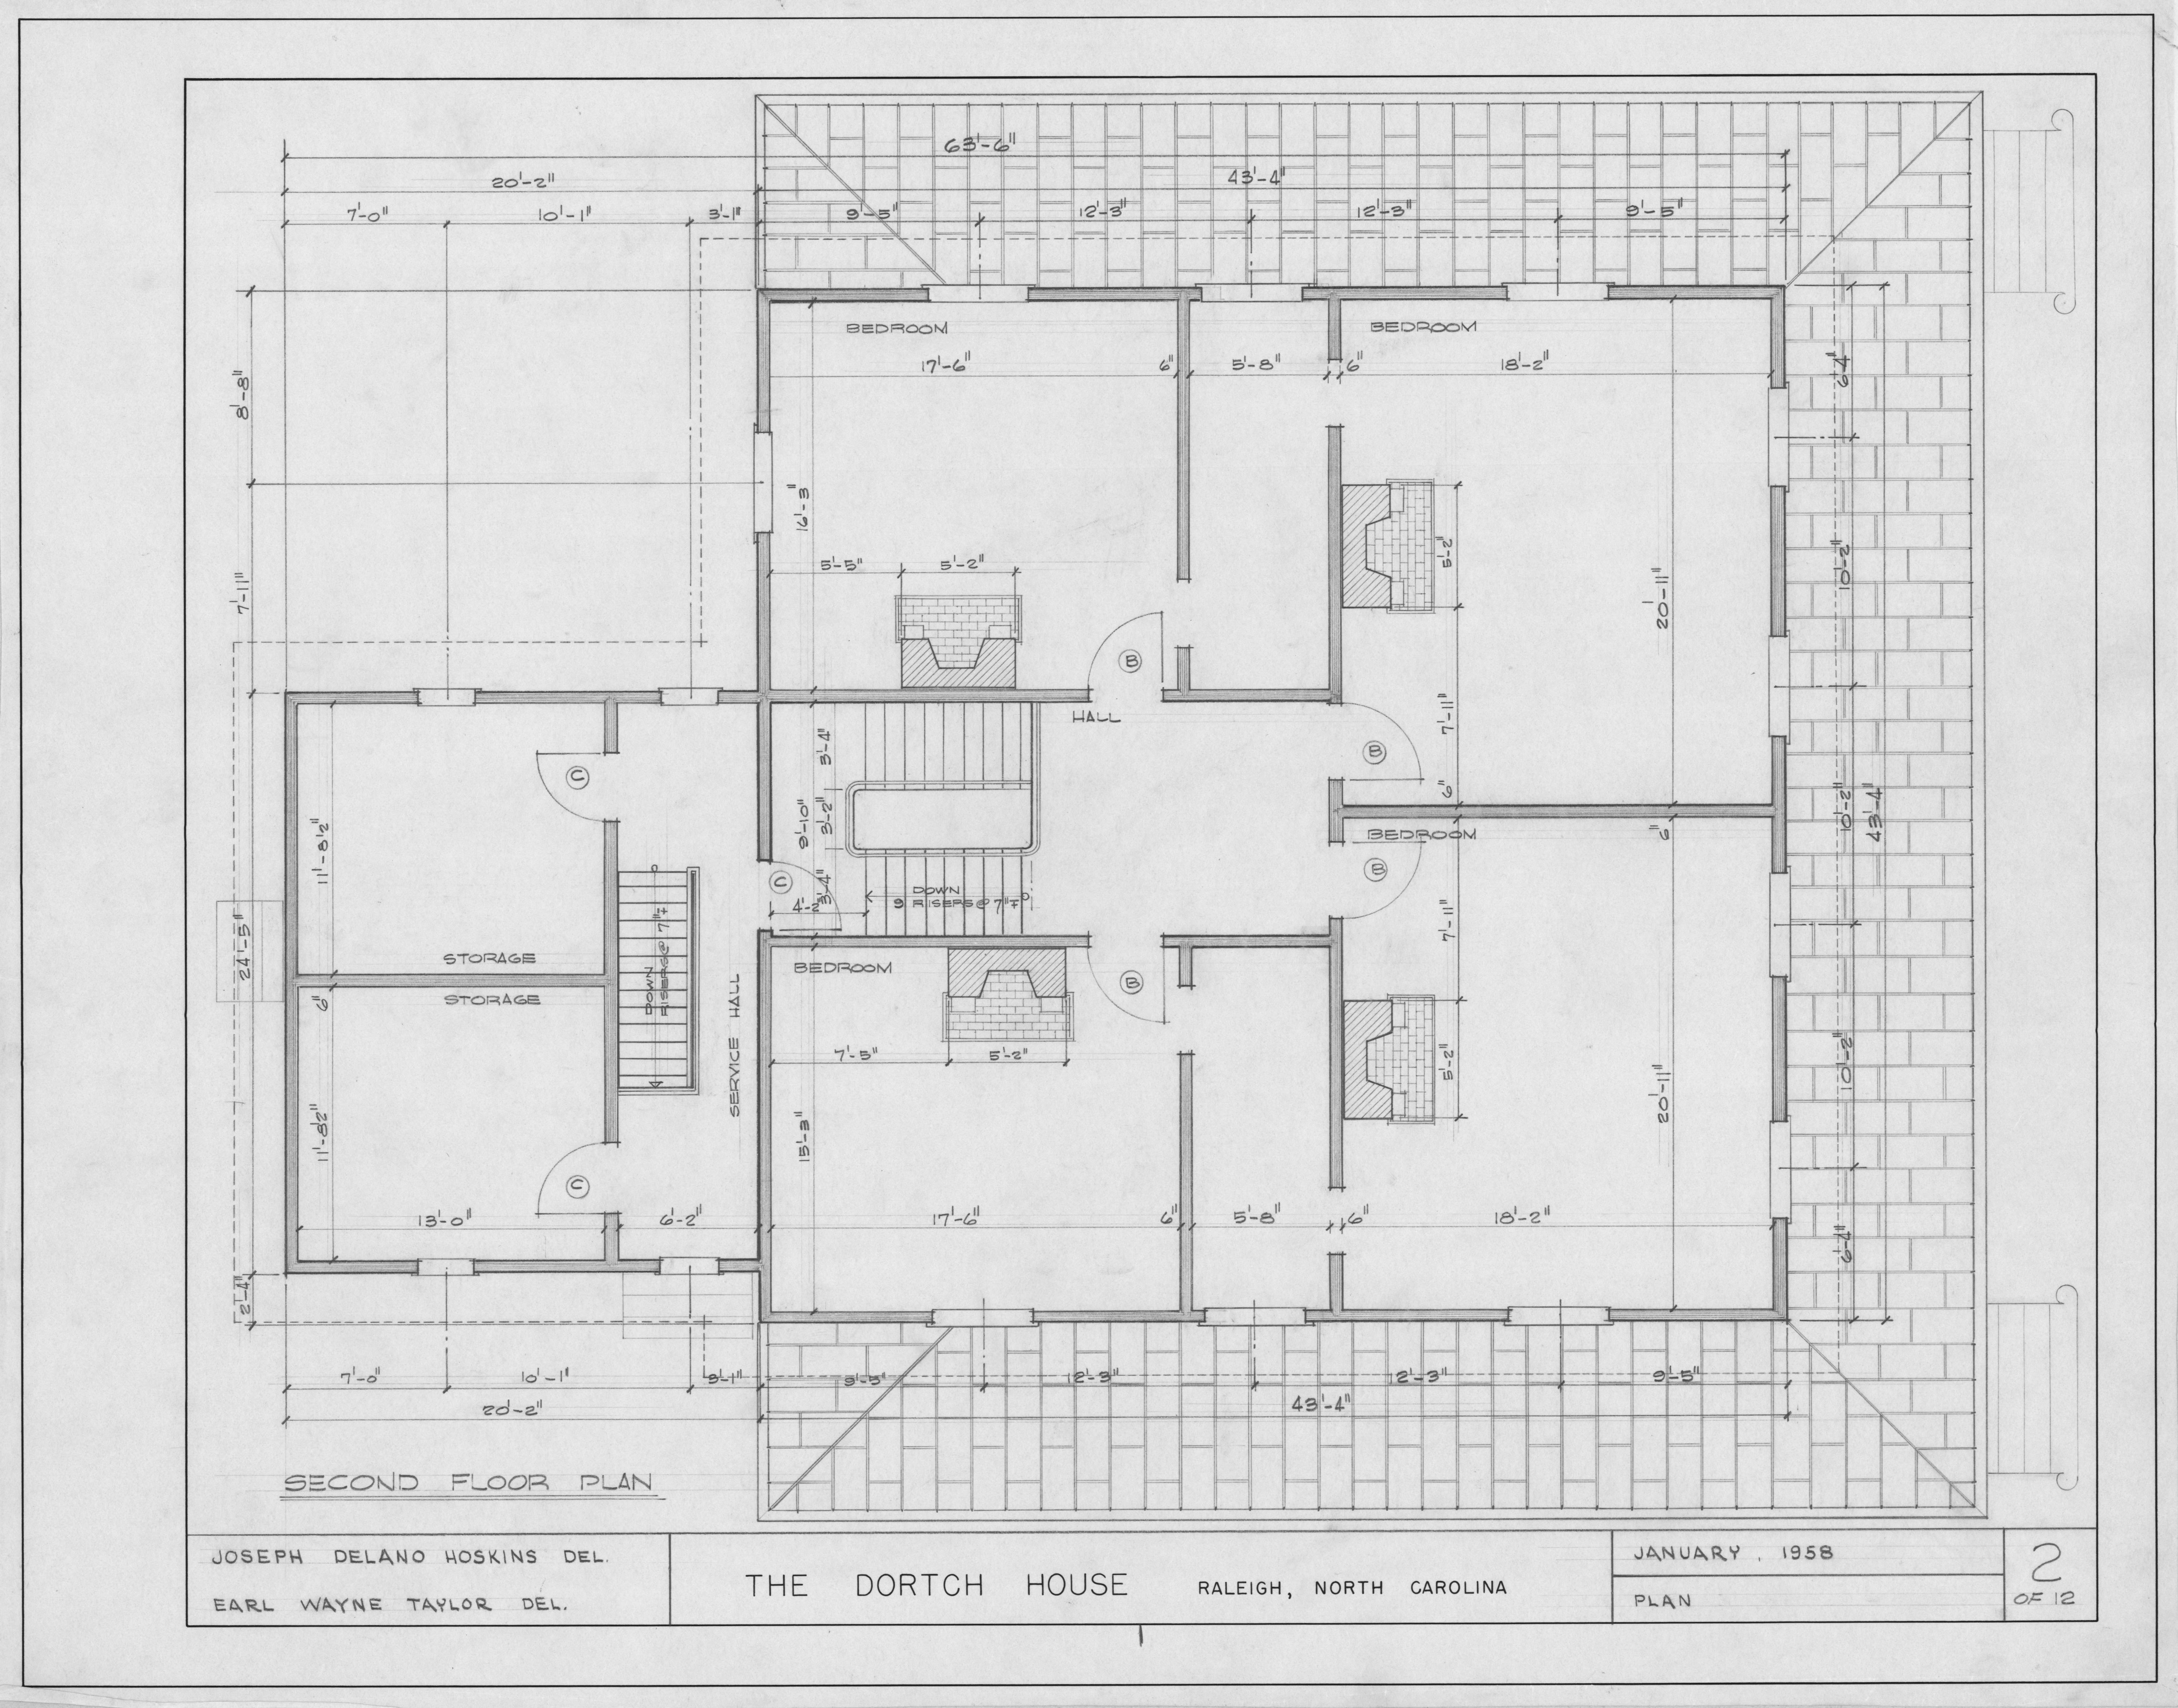 Second Floor Plan Dortch House Raleigh North Carolina